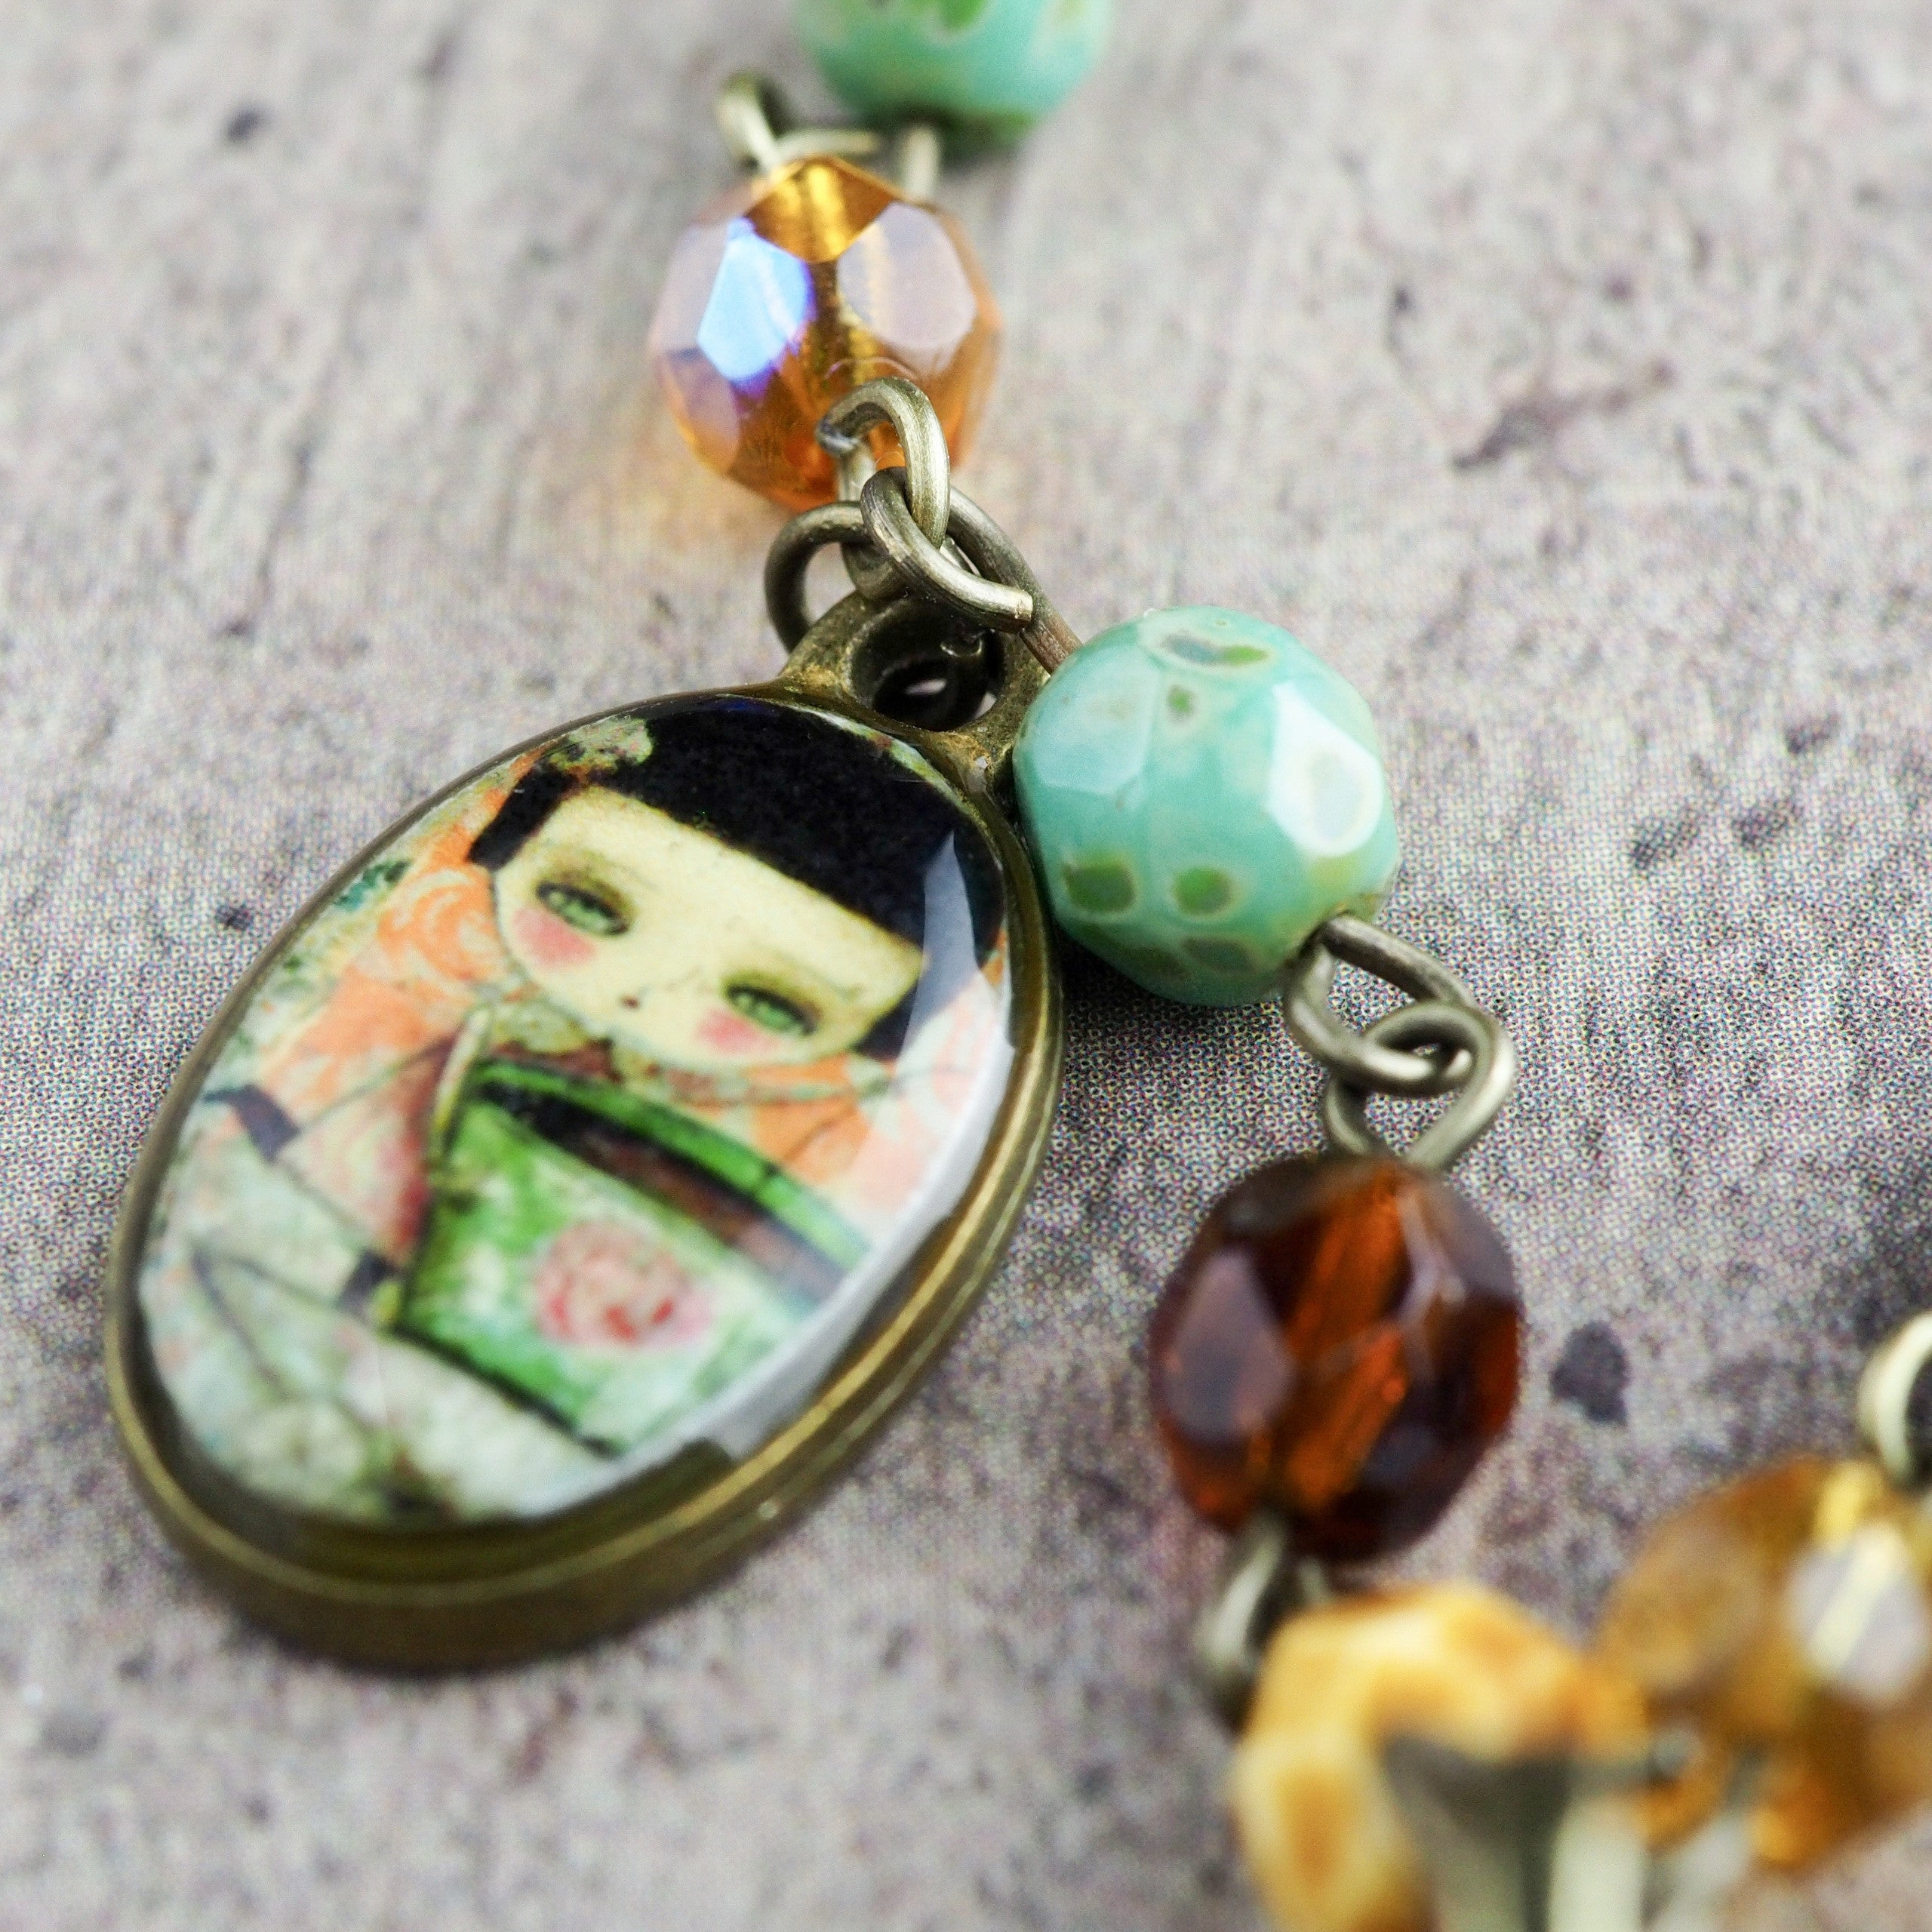 Original mixed materials necklace by Danita Art. The Tea Fairy, a whimsical mixed media illustration.